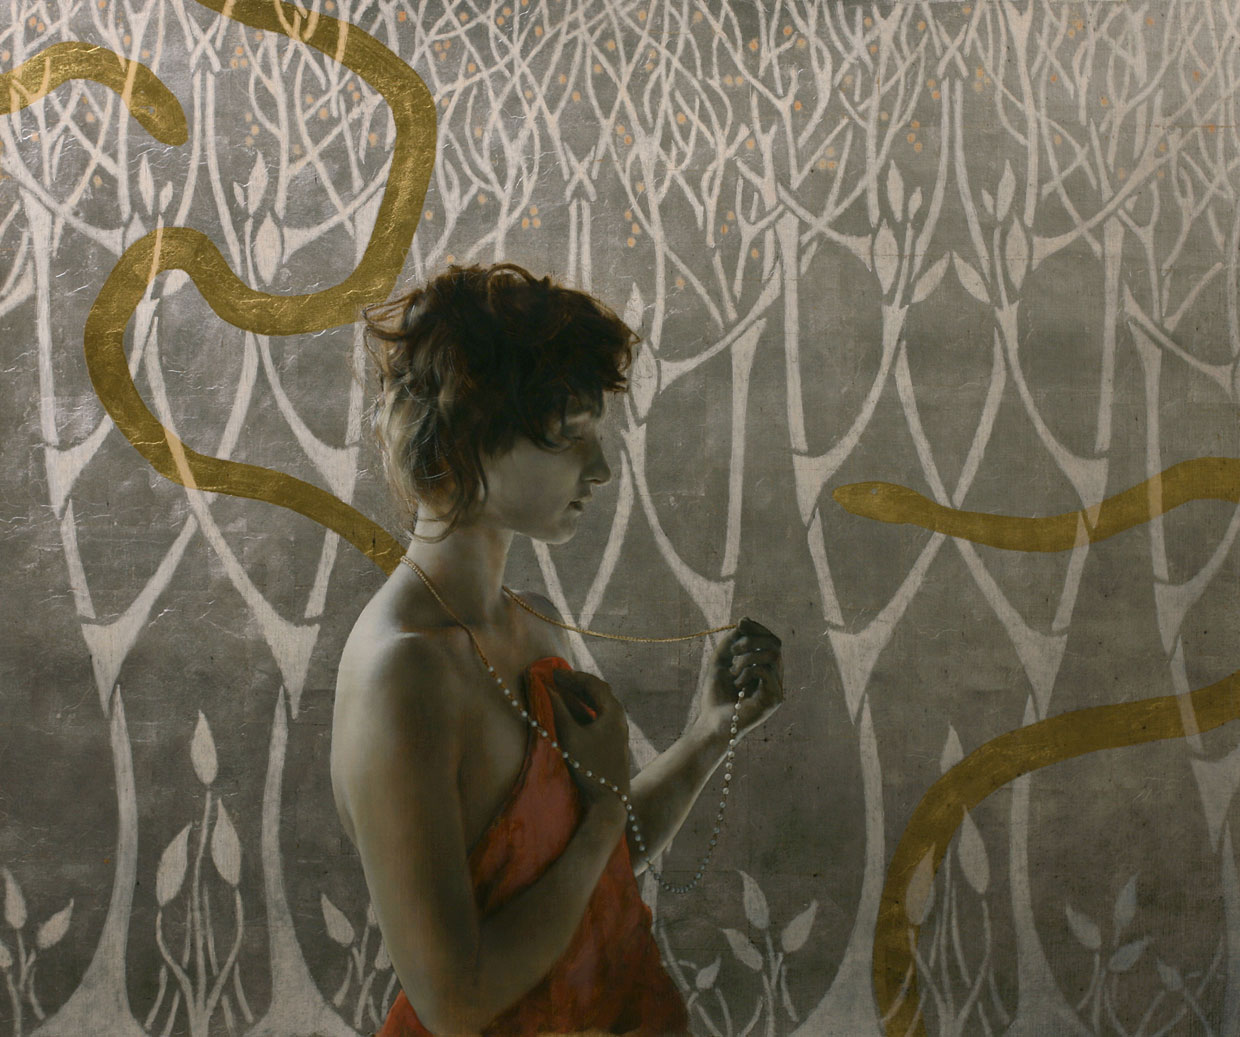 Girl With Serpents and Pearls , 2010. Oil, gold, and silver on linen. 25 x 30 inches. Private collection.